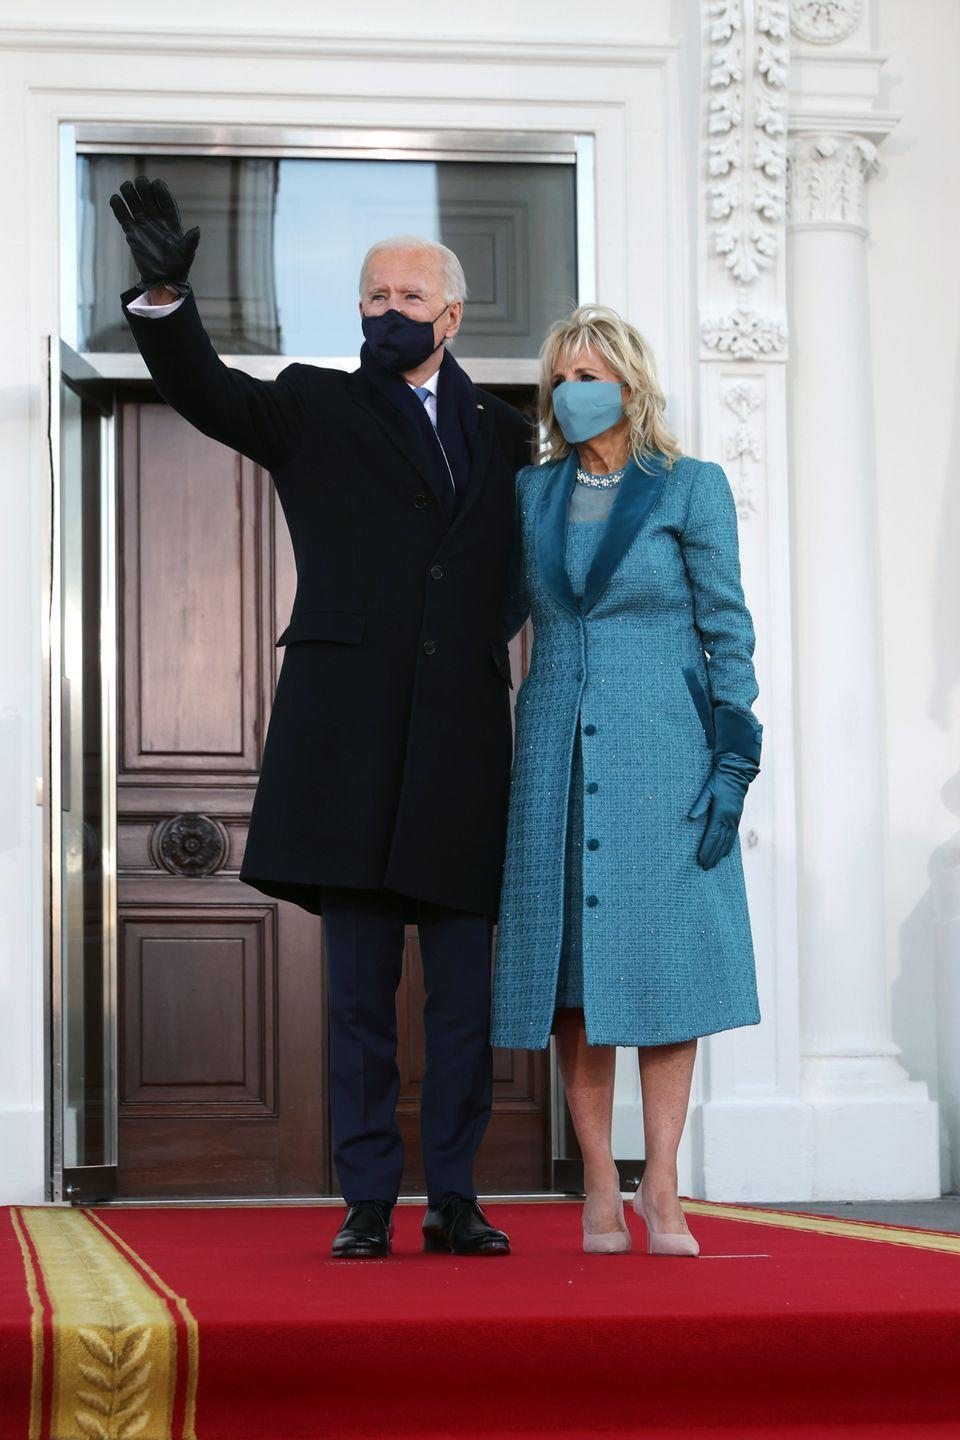 """<p>The First Lady chose a dress and matching coat in teal bluein wool tweed—a twist on the color of the Democratic Party—designed by New York City's Alexandra O'Neill of <a href=""""https://markarian-nyc.com"""" rel=""""nofollow noopener"""" target=""""_blank"""" data-ylk=""""slk:Markarian"""" class=""""link rapid-noclick-resp"""">Markarian</a>. The house, which is more of a newcomer to the fashion scene, is known for its feminine party-wear (Dr. Biden's choice was trimmed with velvet, chiffon, crystals, and pearls). It is tradition for the First Lady to support American designers during inauguration events, and this kind of exposure for a young brand and its designer is a welcome choice during a year of economic hardships for many industries. </p><p>The First Lady also wore white diamond pavé earrings set in recycled platinum for the festivities. The earrings, which are designed by <a href=""""https://www.moniquepean.com"""" rel=""""nofollow noopener"""" target=""""_blank"""" data-ylk=""""slk:Monique Péan"""" class=""""link rapid-noclick-resp"""">Monique Péan</a> and crafted by master artisans in New York City, are a nod to sustainability. </p>"""